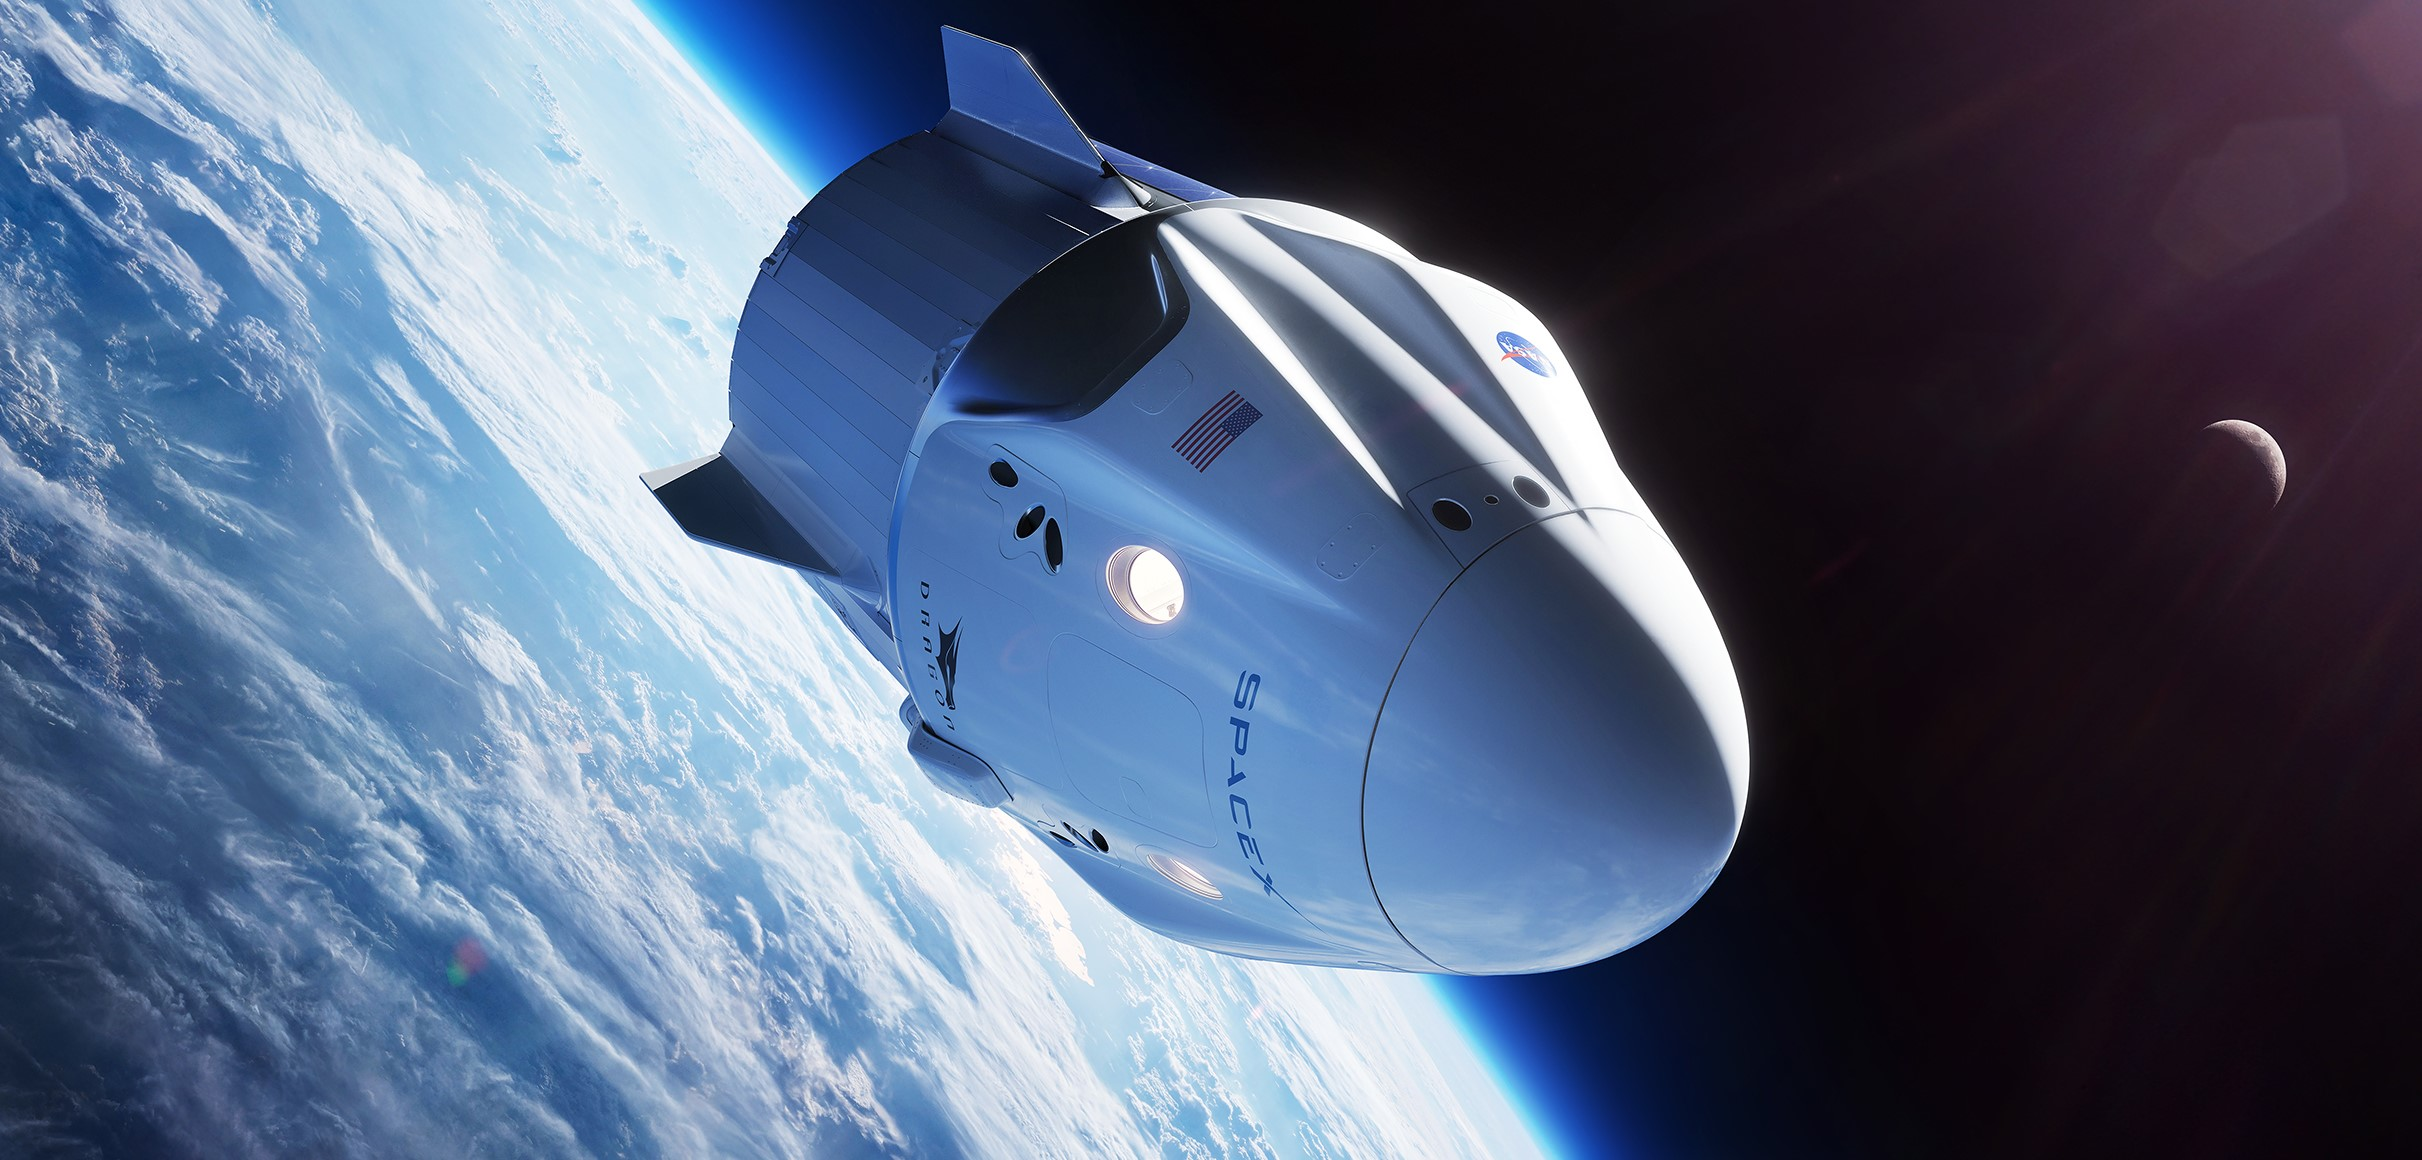 SpaceX spacecraft safely returns to Earth